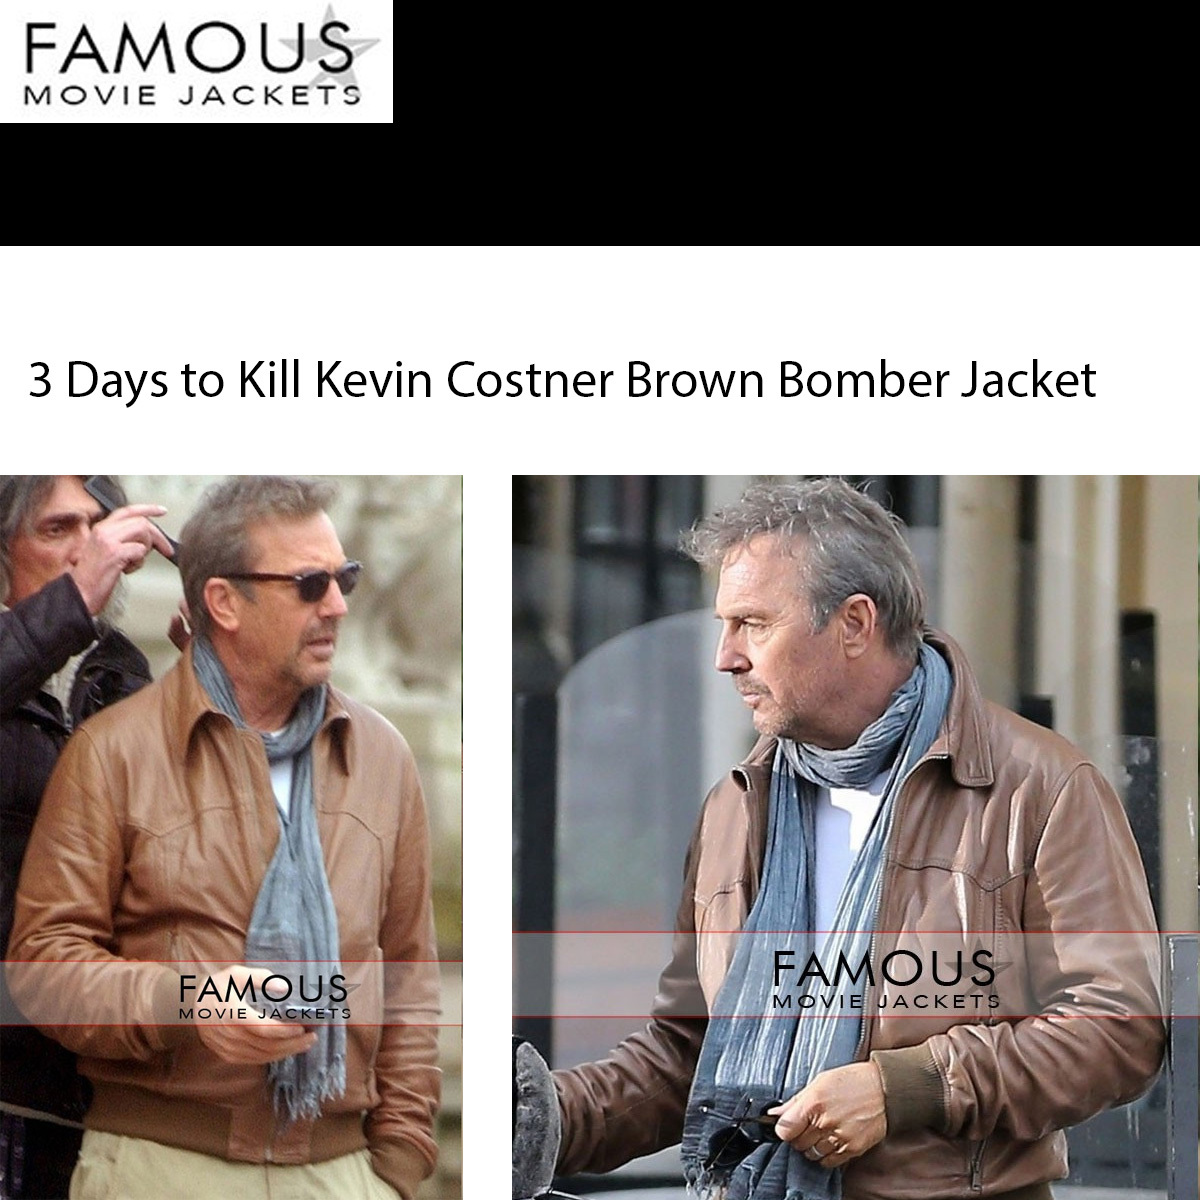 Fishing 3 Days to Kill Kevin Costner Brown Bomber Jacket